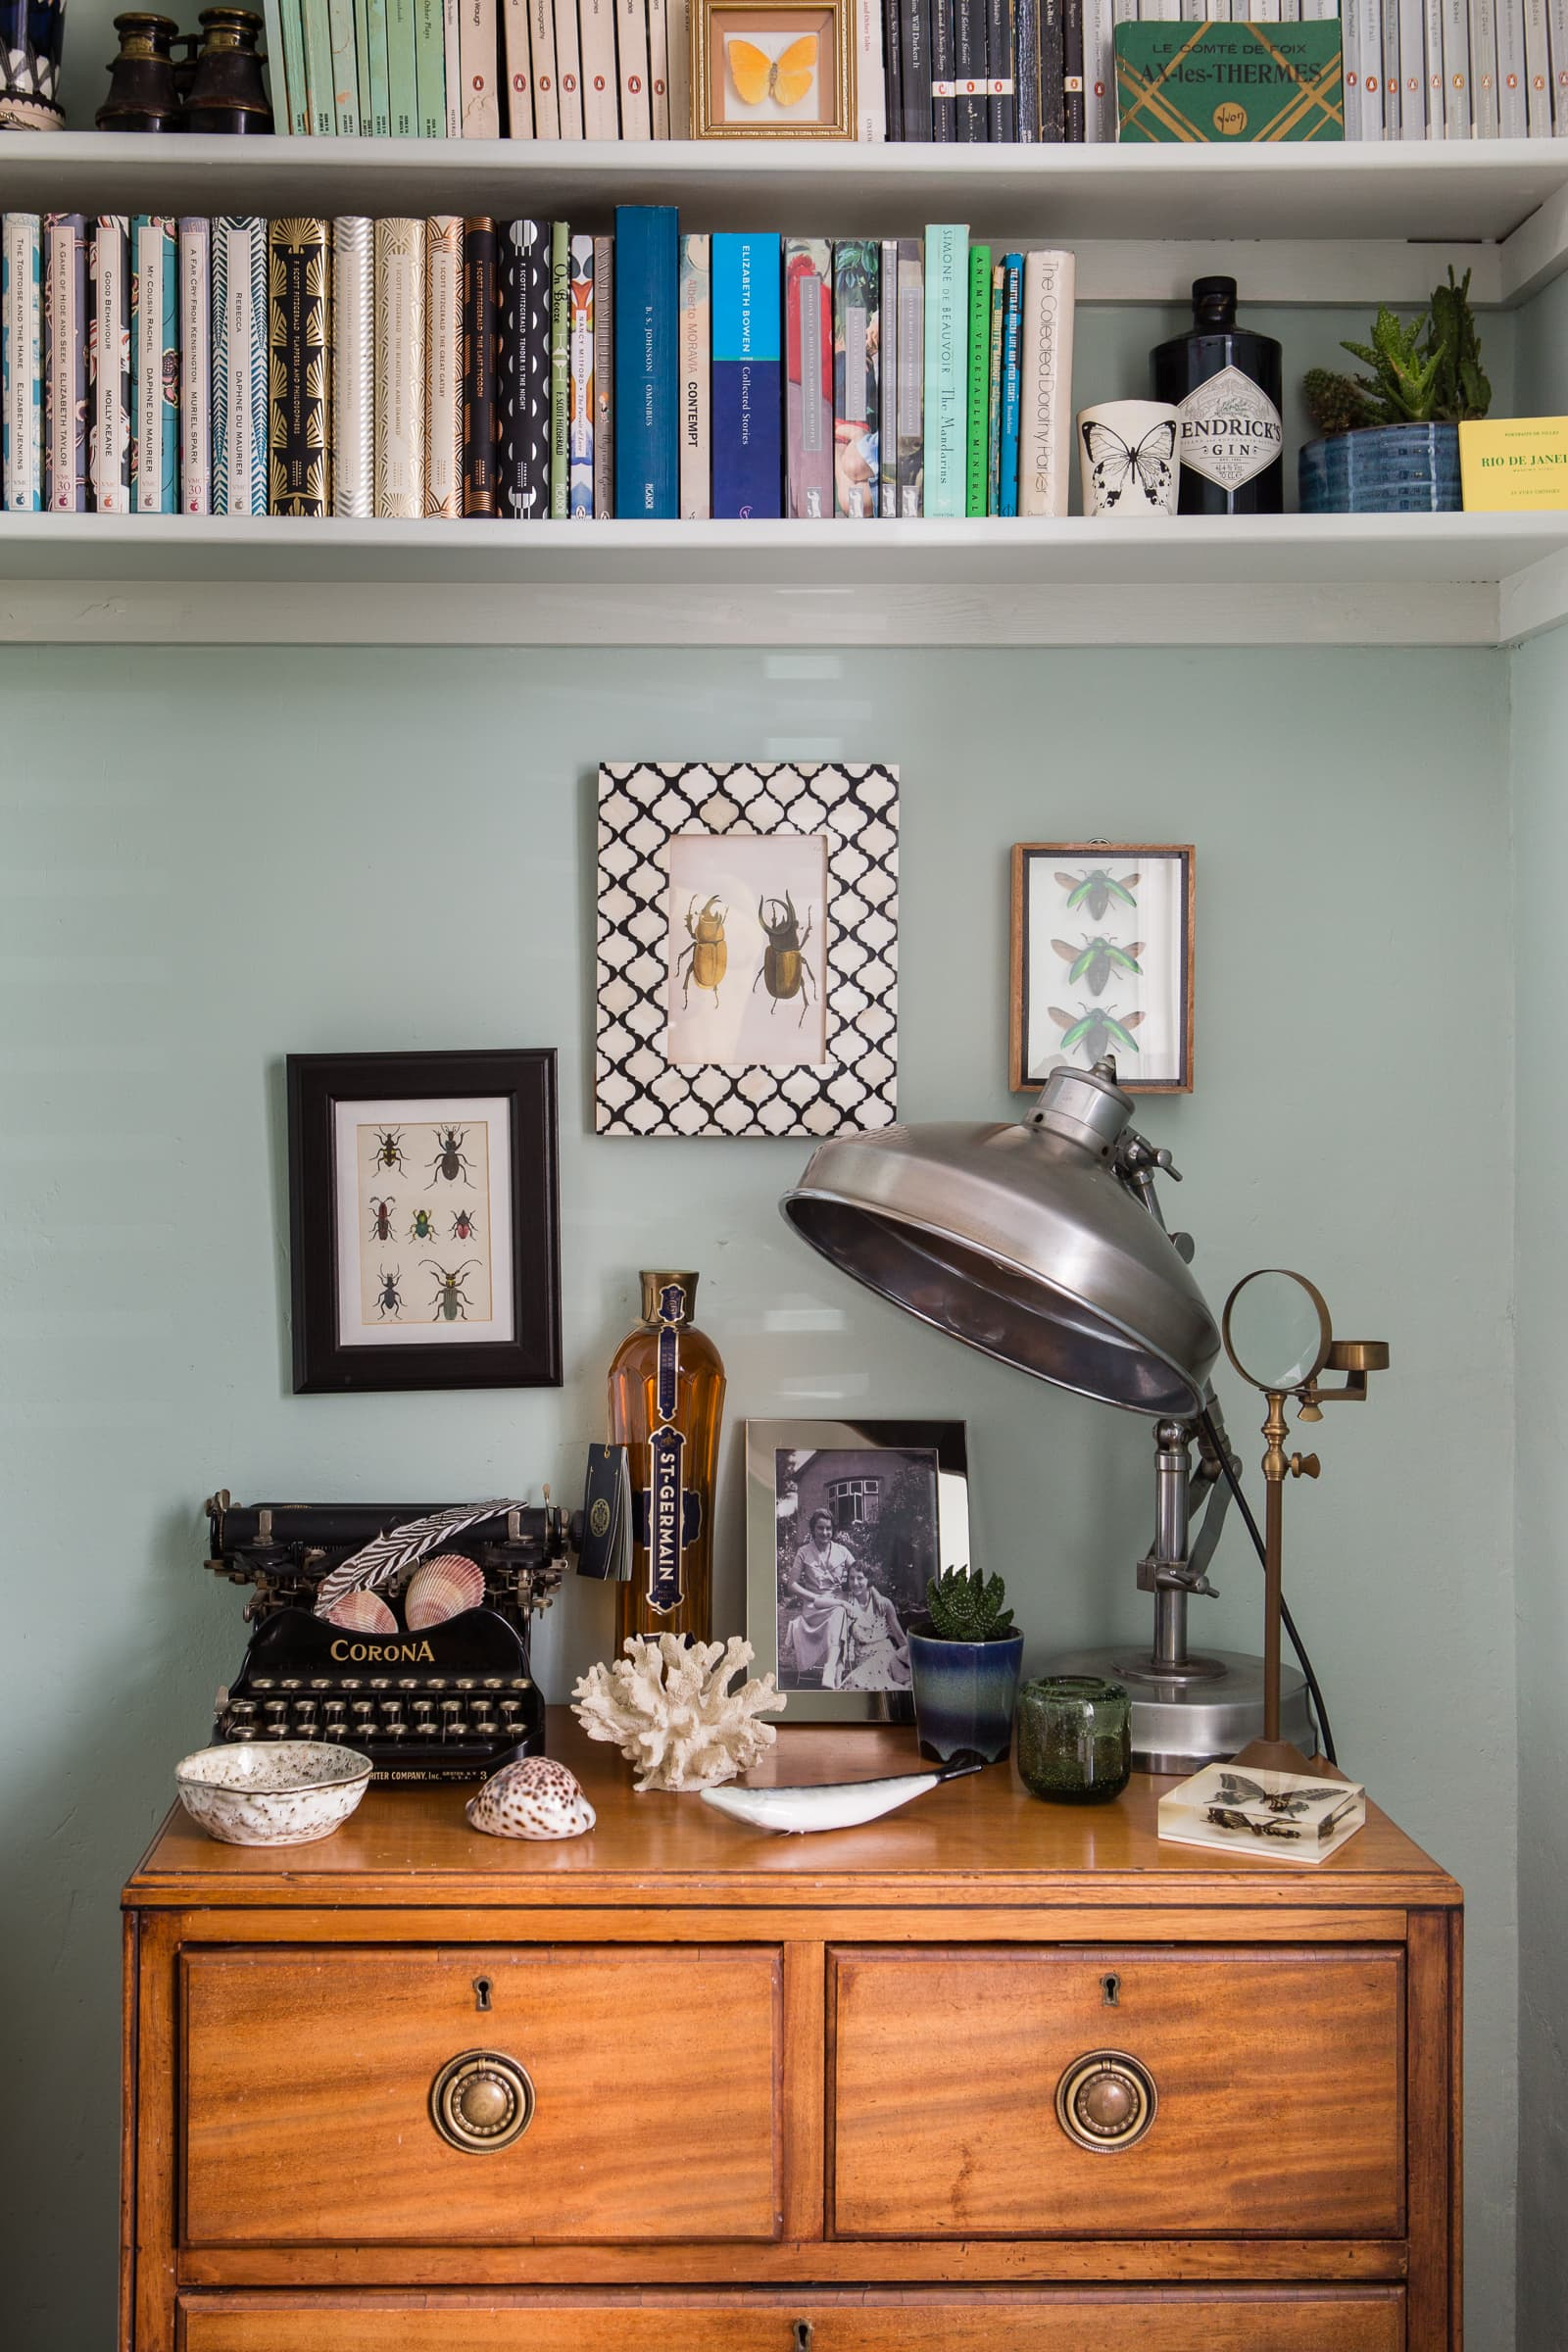 7 Stylish Ways to Decorate with Vintage Typewriters; #VintageDecor #HomeDecor #VintageTypewriters